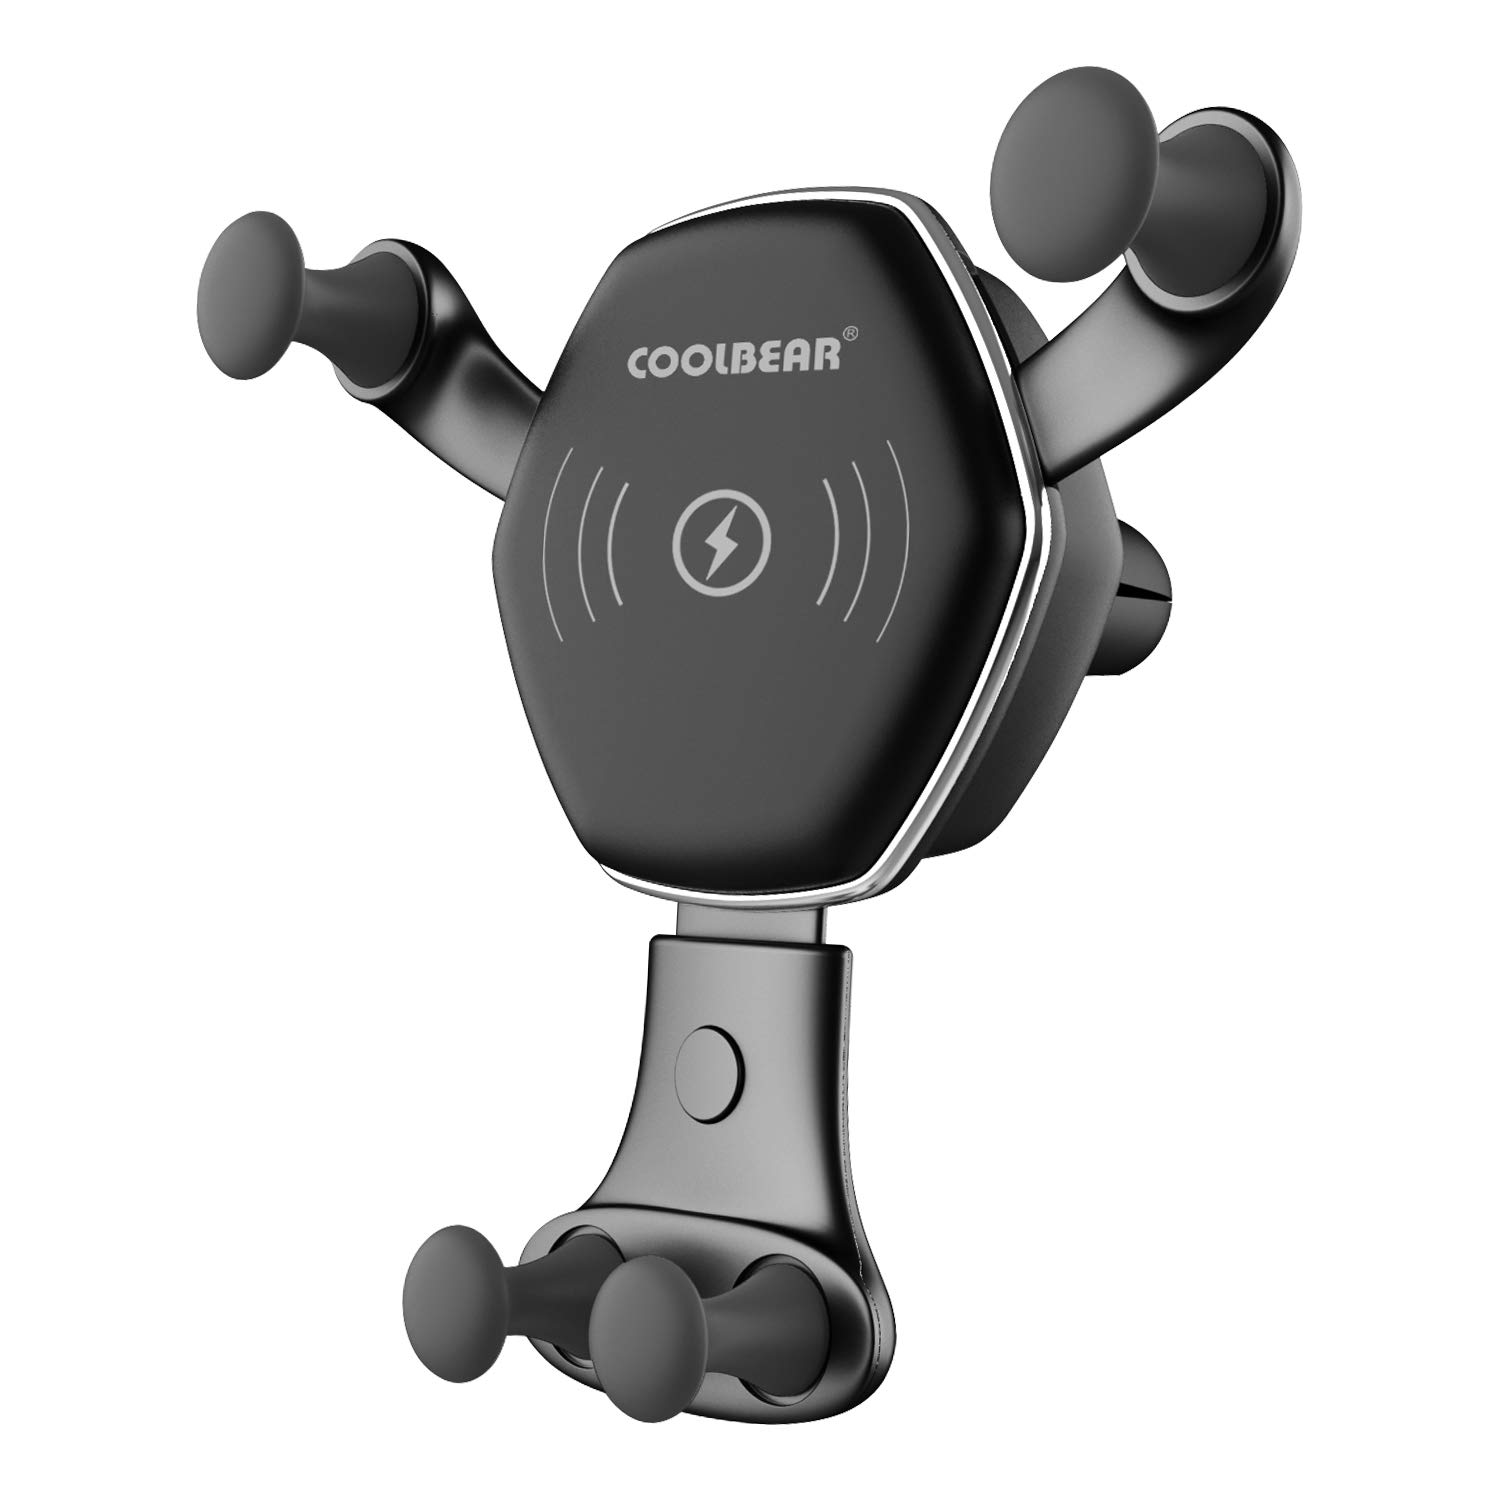 Wireless Car Charger Mount, COOLBEAR Adjustable Qi Gravity Air Vent Phone Holder for iPhone Samsung Nexus LG and All Smartphone Qi Certified